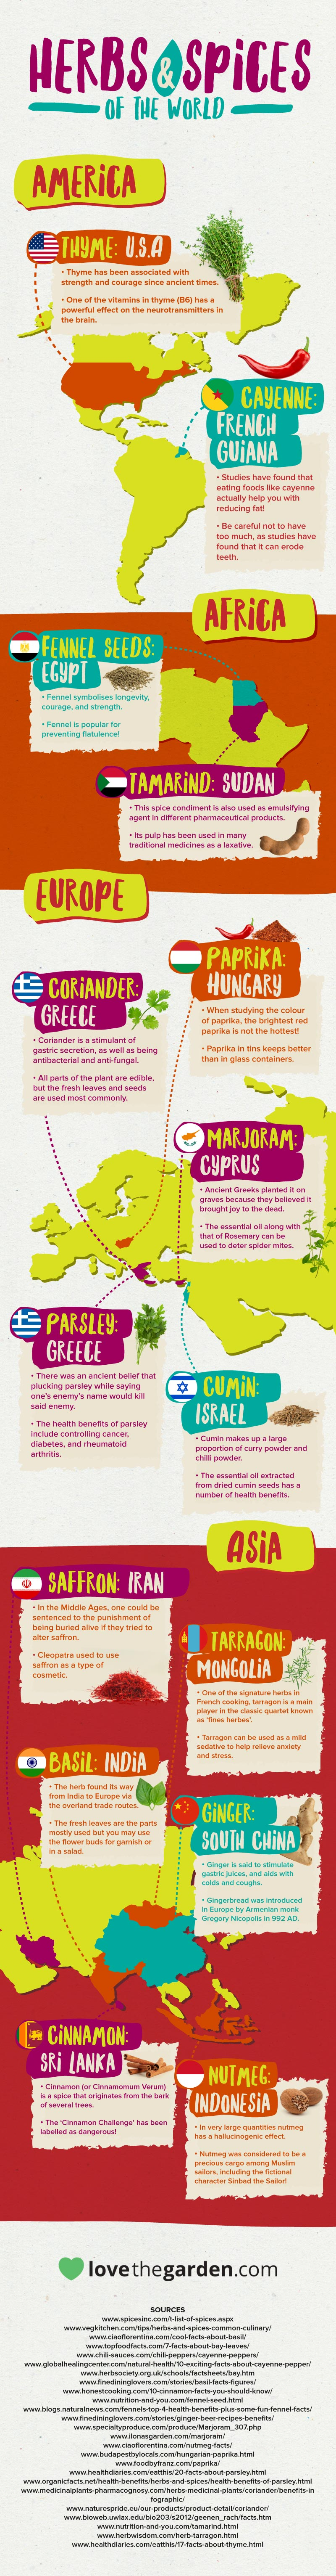 The herb and spice world map infographic